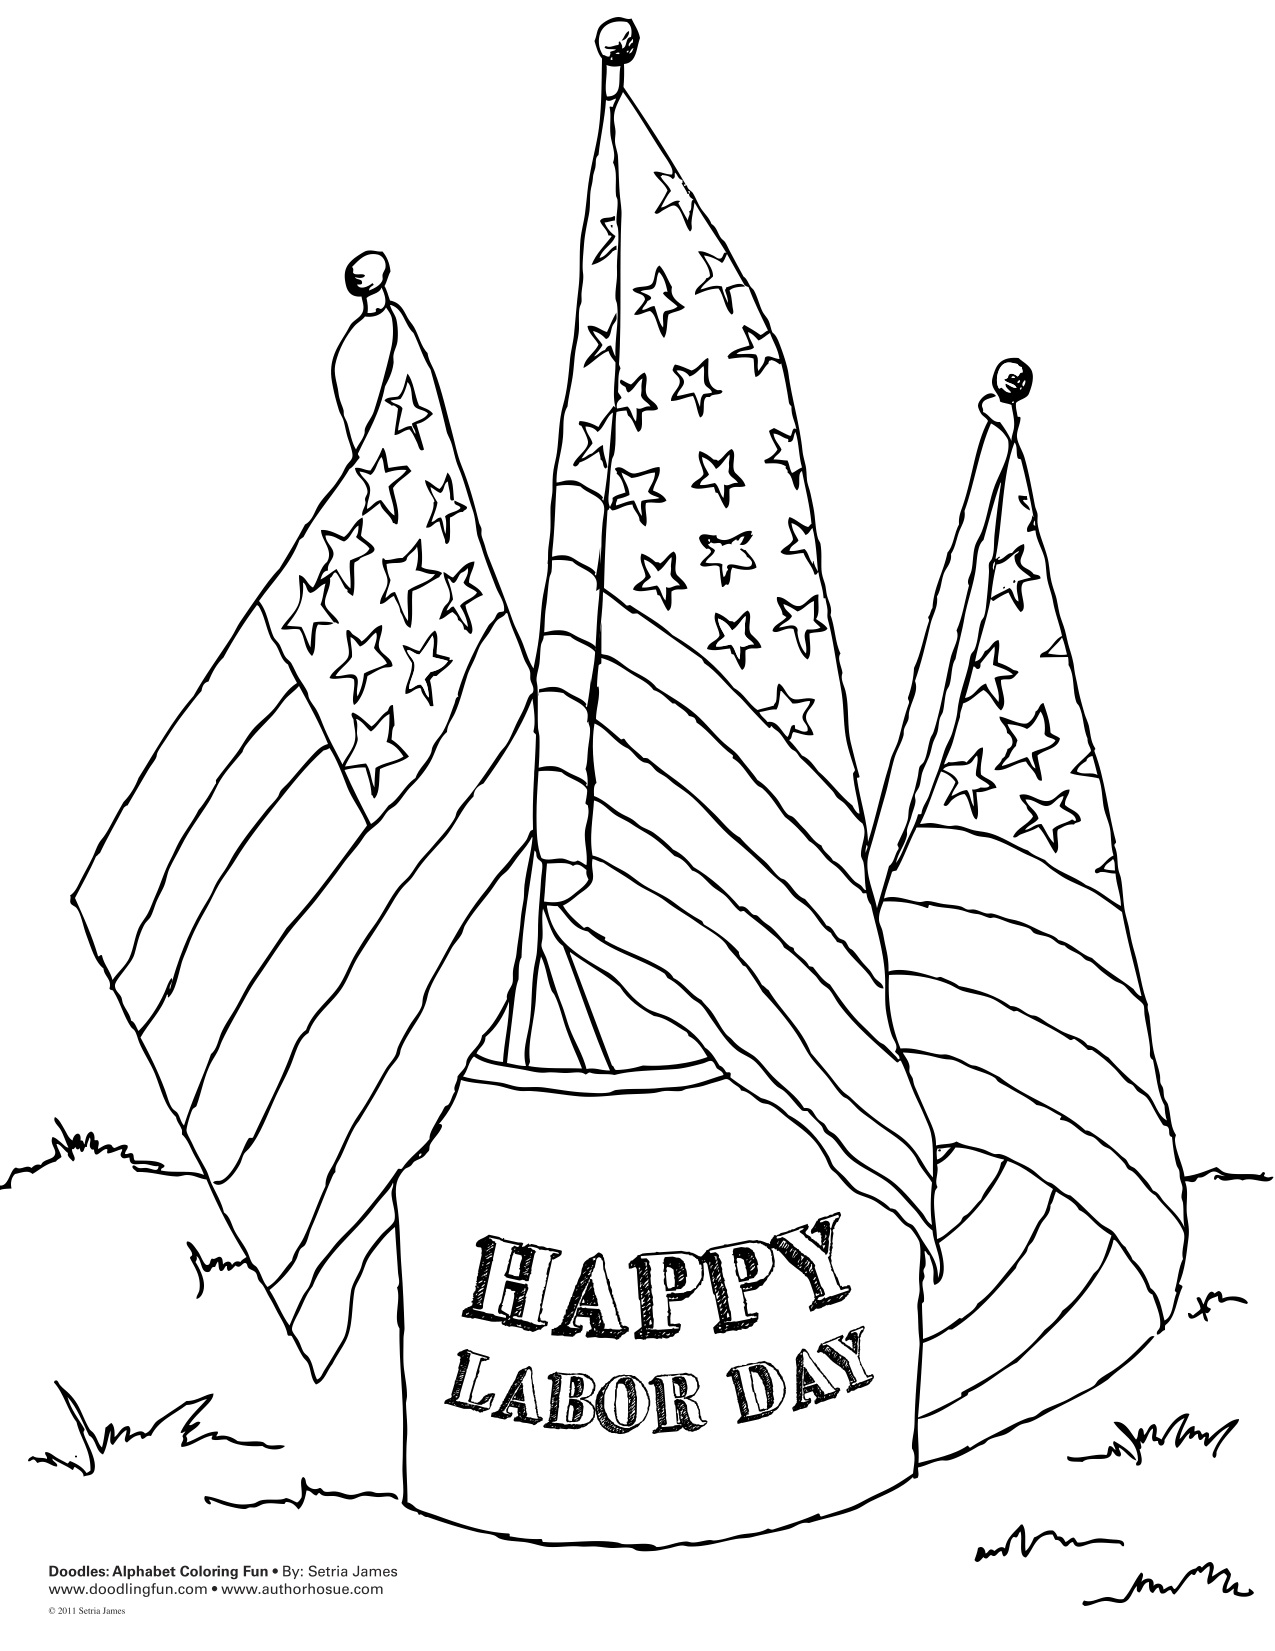 labor day coloring pages free printable happy labor day coloring sheet doodles ave day pages printable labor free coloring